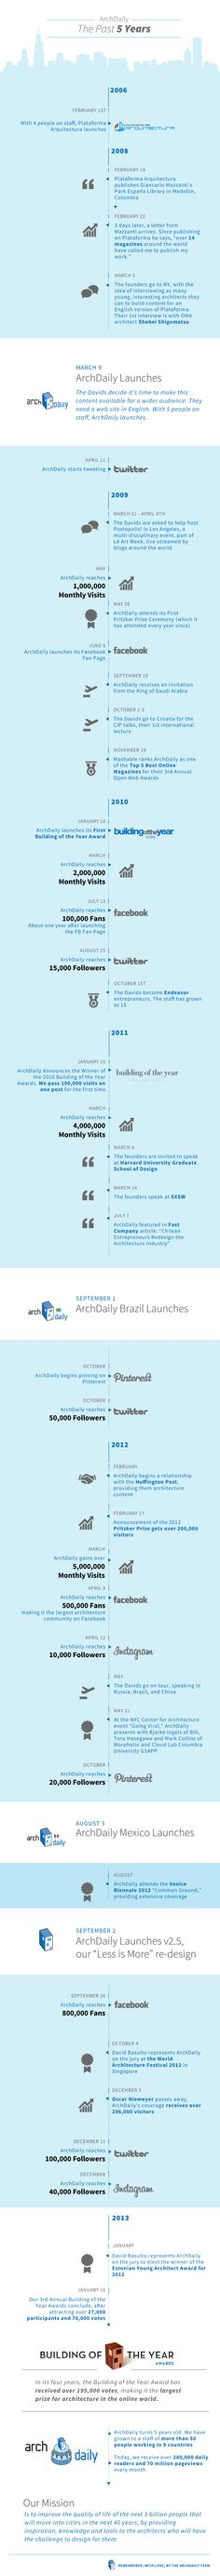 Infographic: ArchDaily, The Past 5 Years   ArchDaily via @ArchDaily